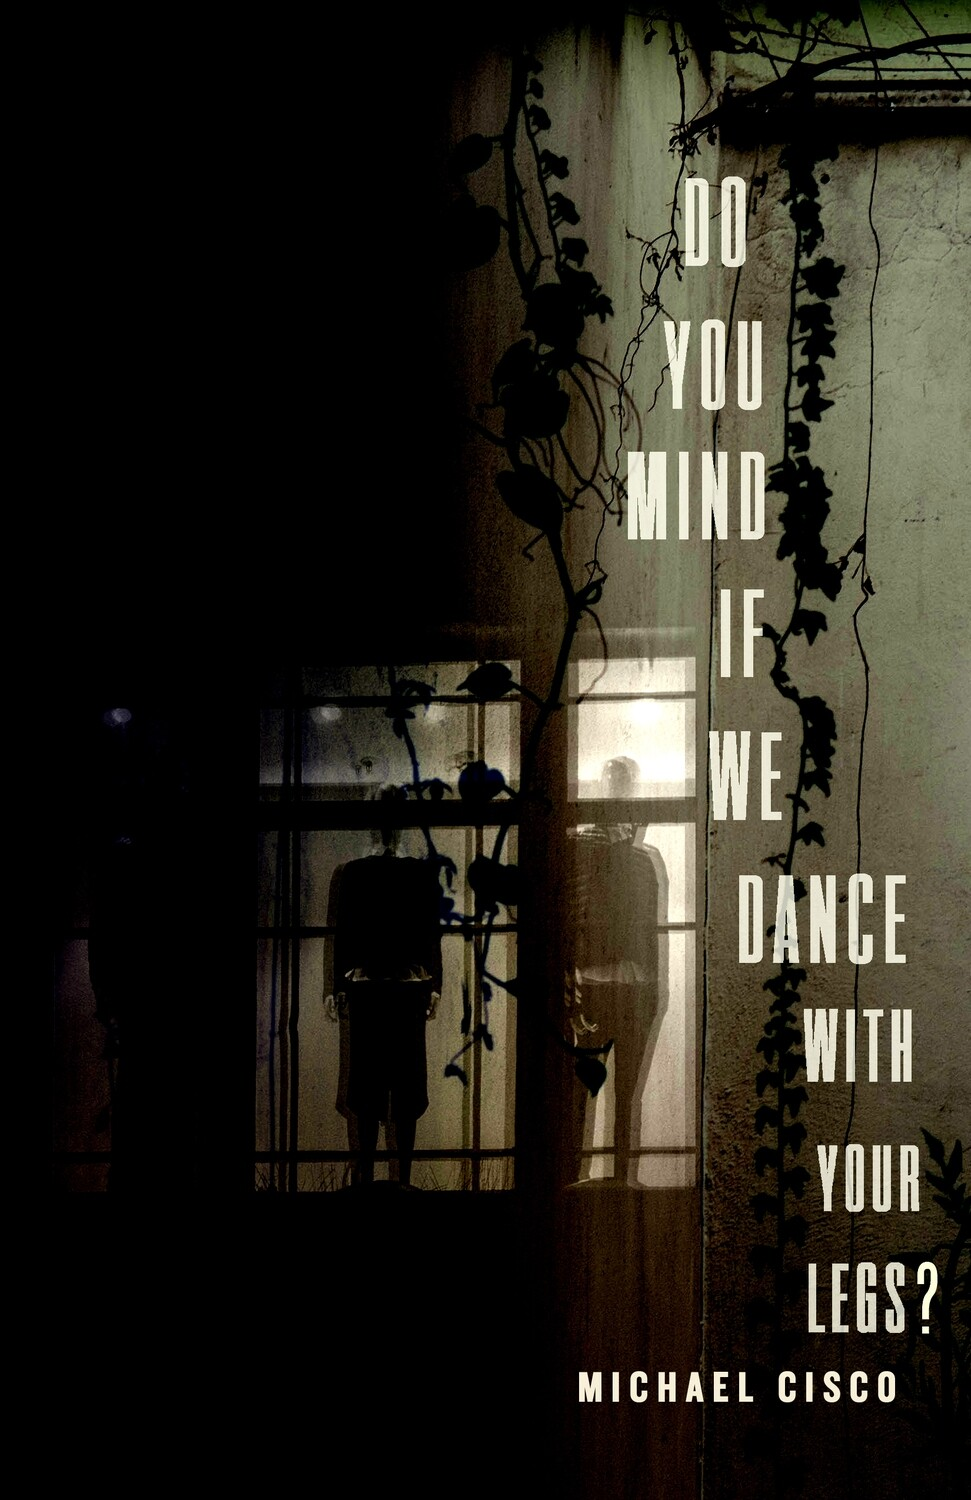 Do You Mind If We Dance With Your Legs? by Michael Cisco (Charitable Chapbook #7)